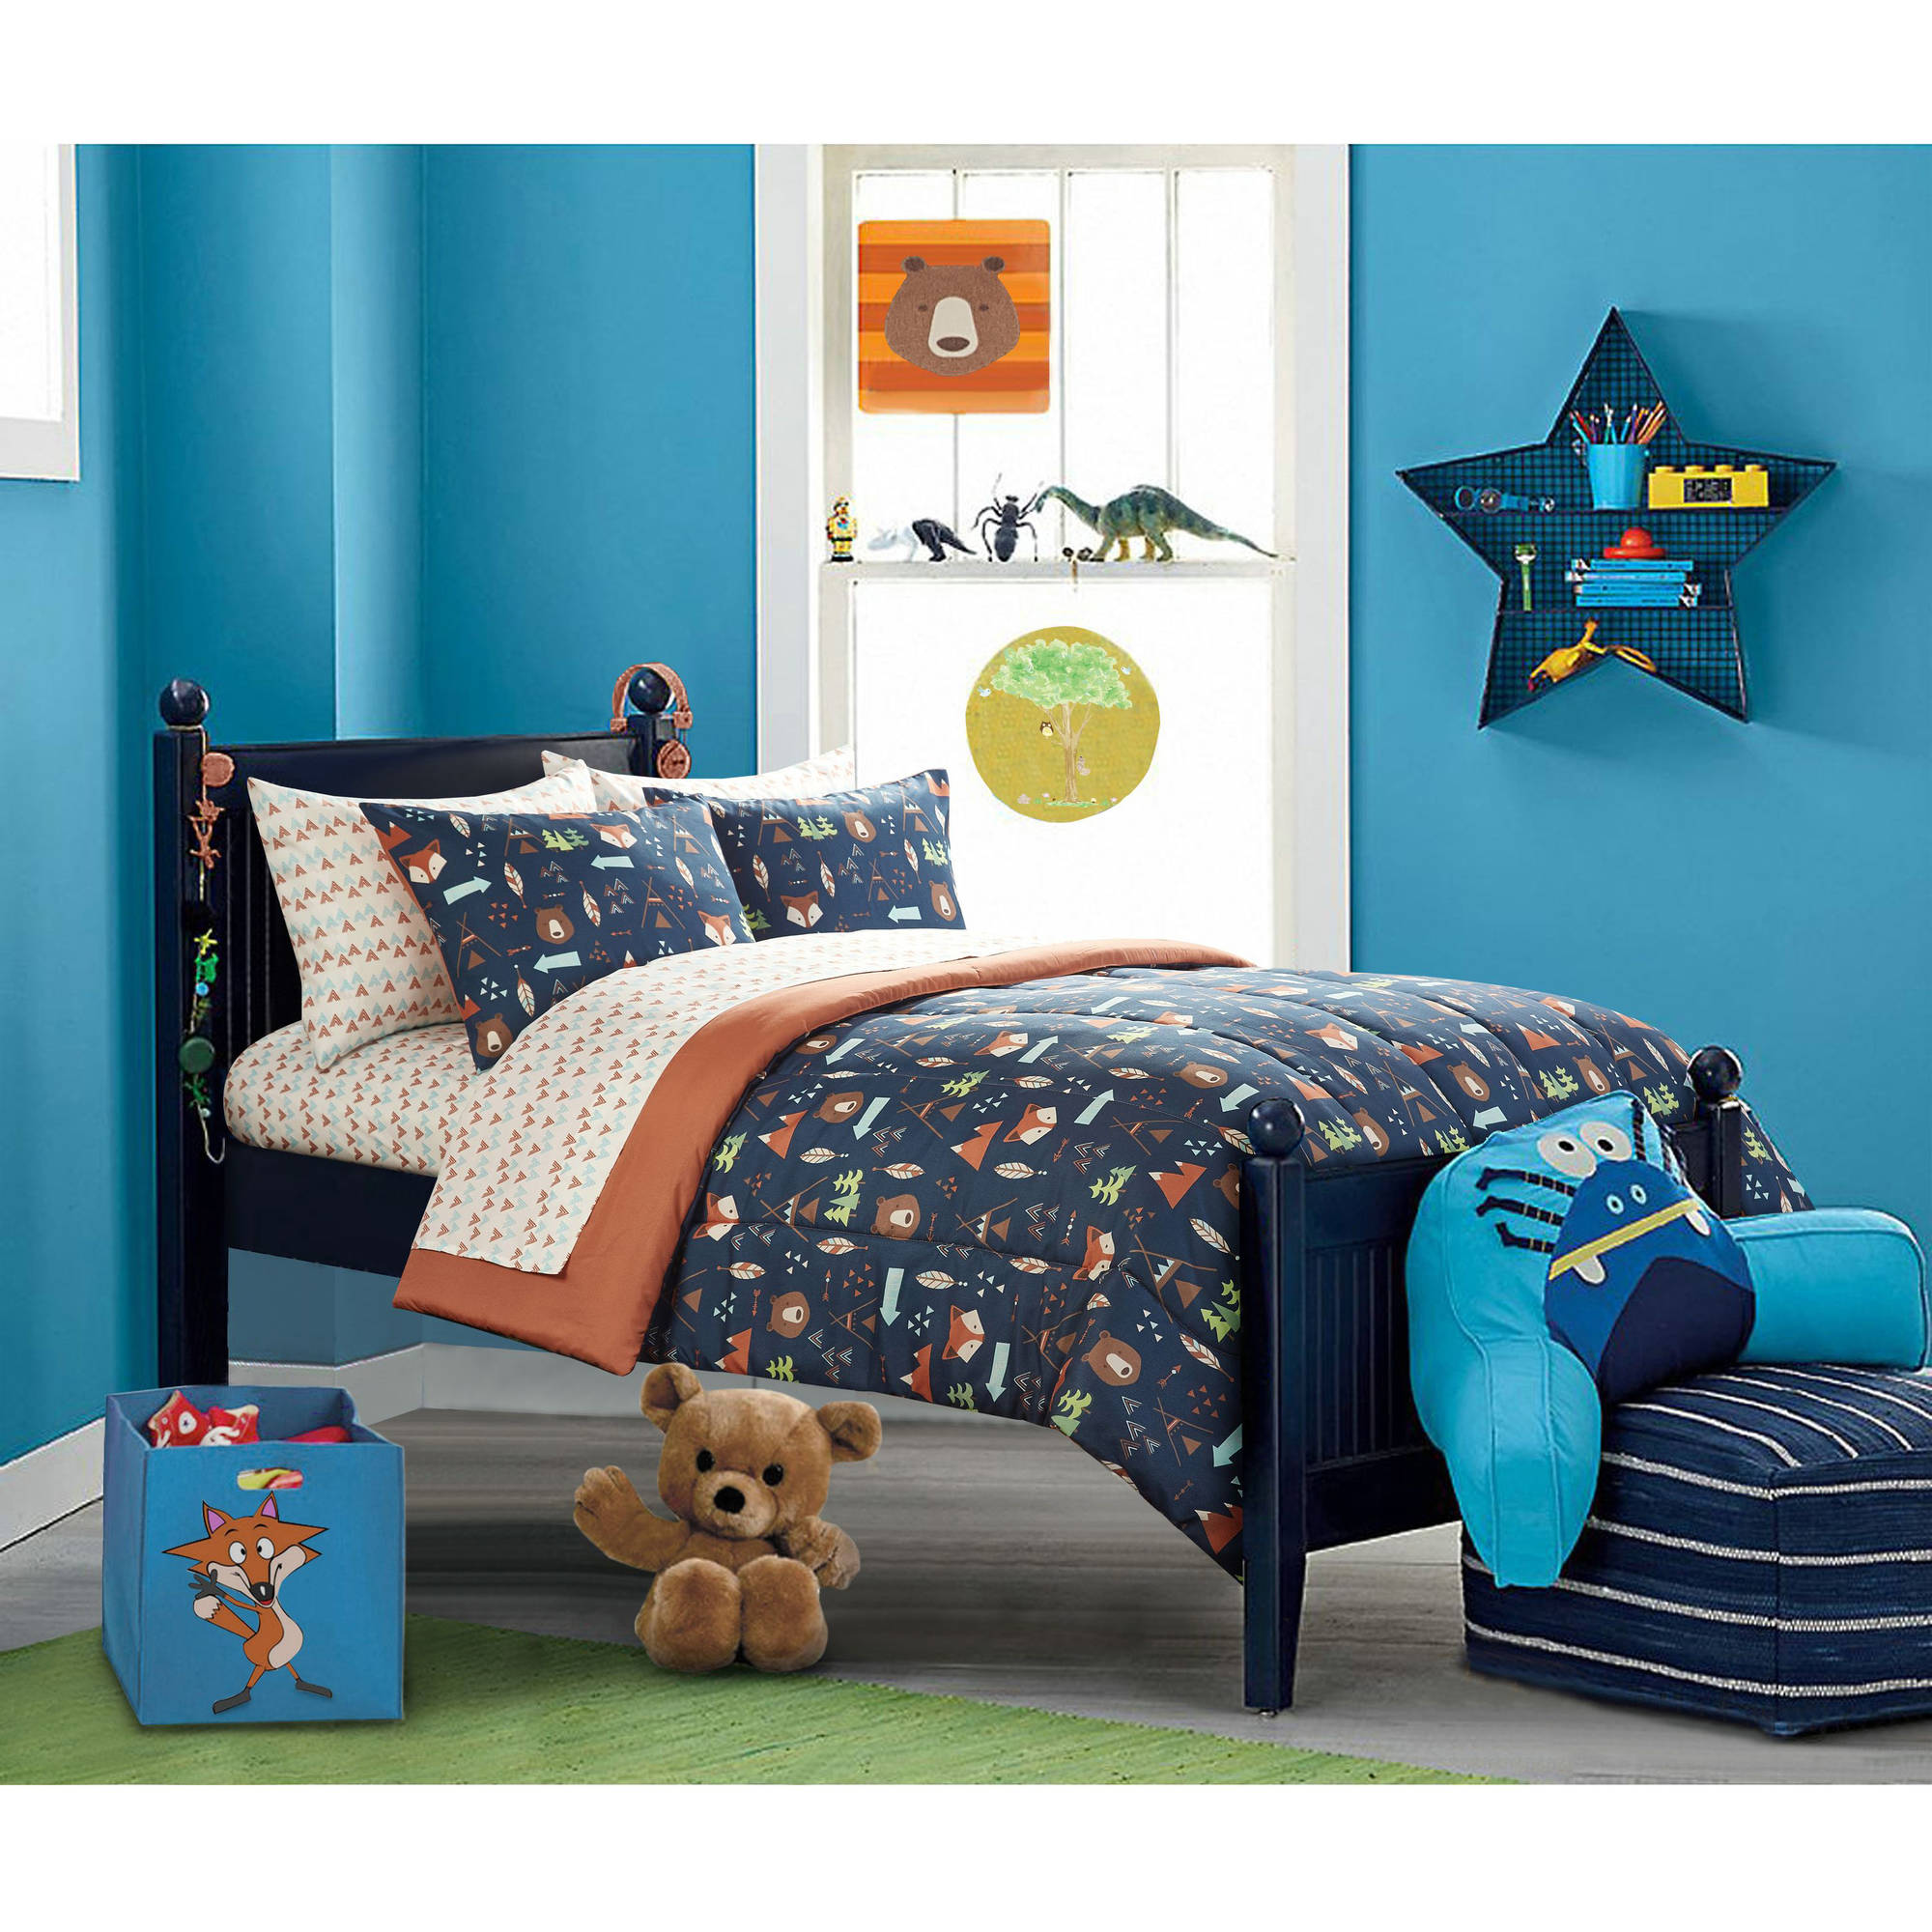 American Kids Woodland Safari Boy Bed In A Bag Bedding Set   Walmart.com